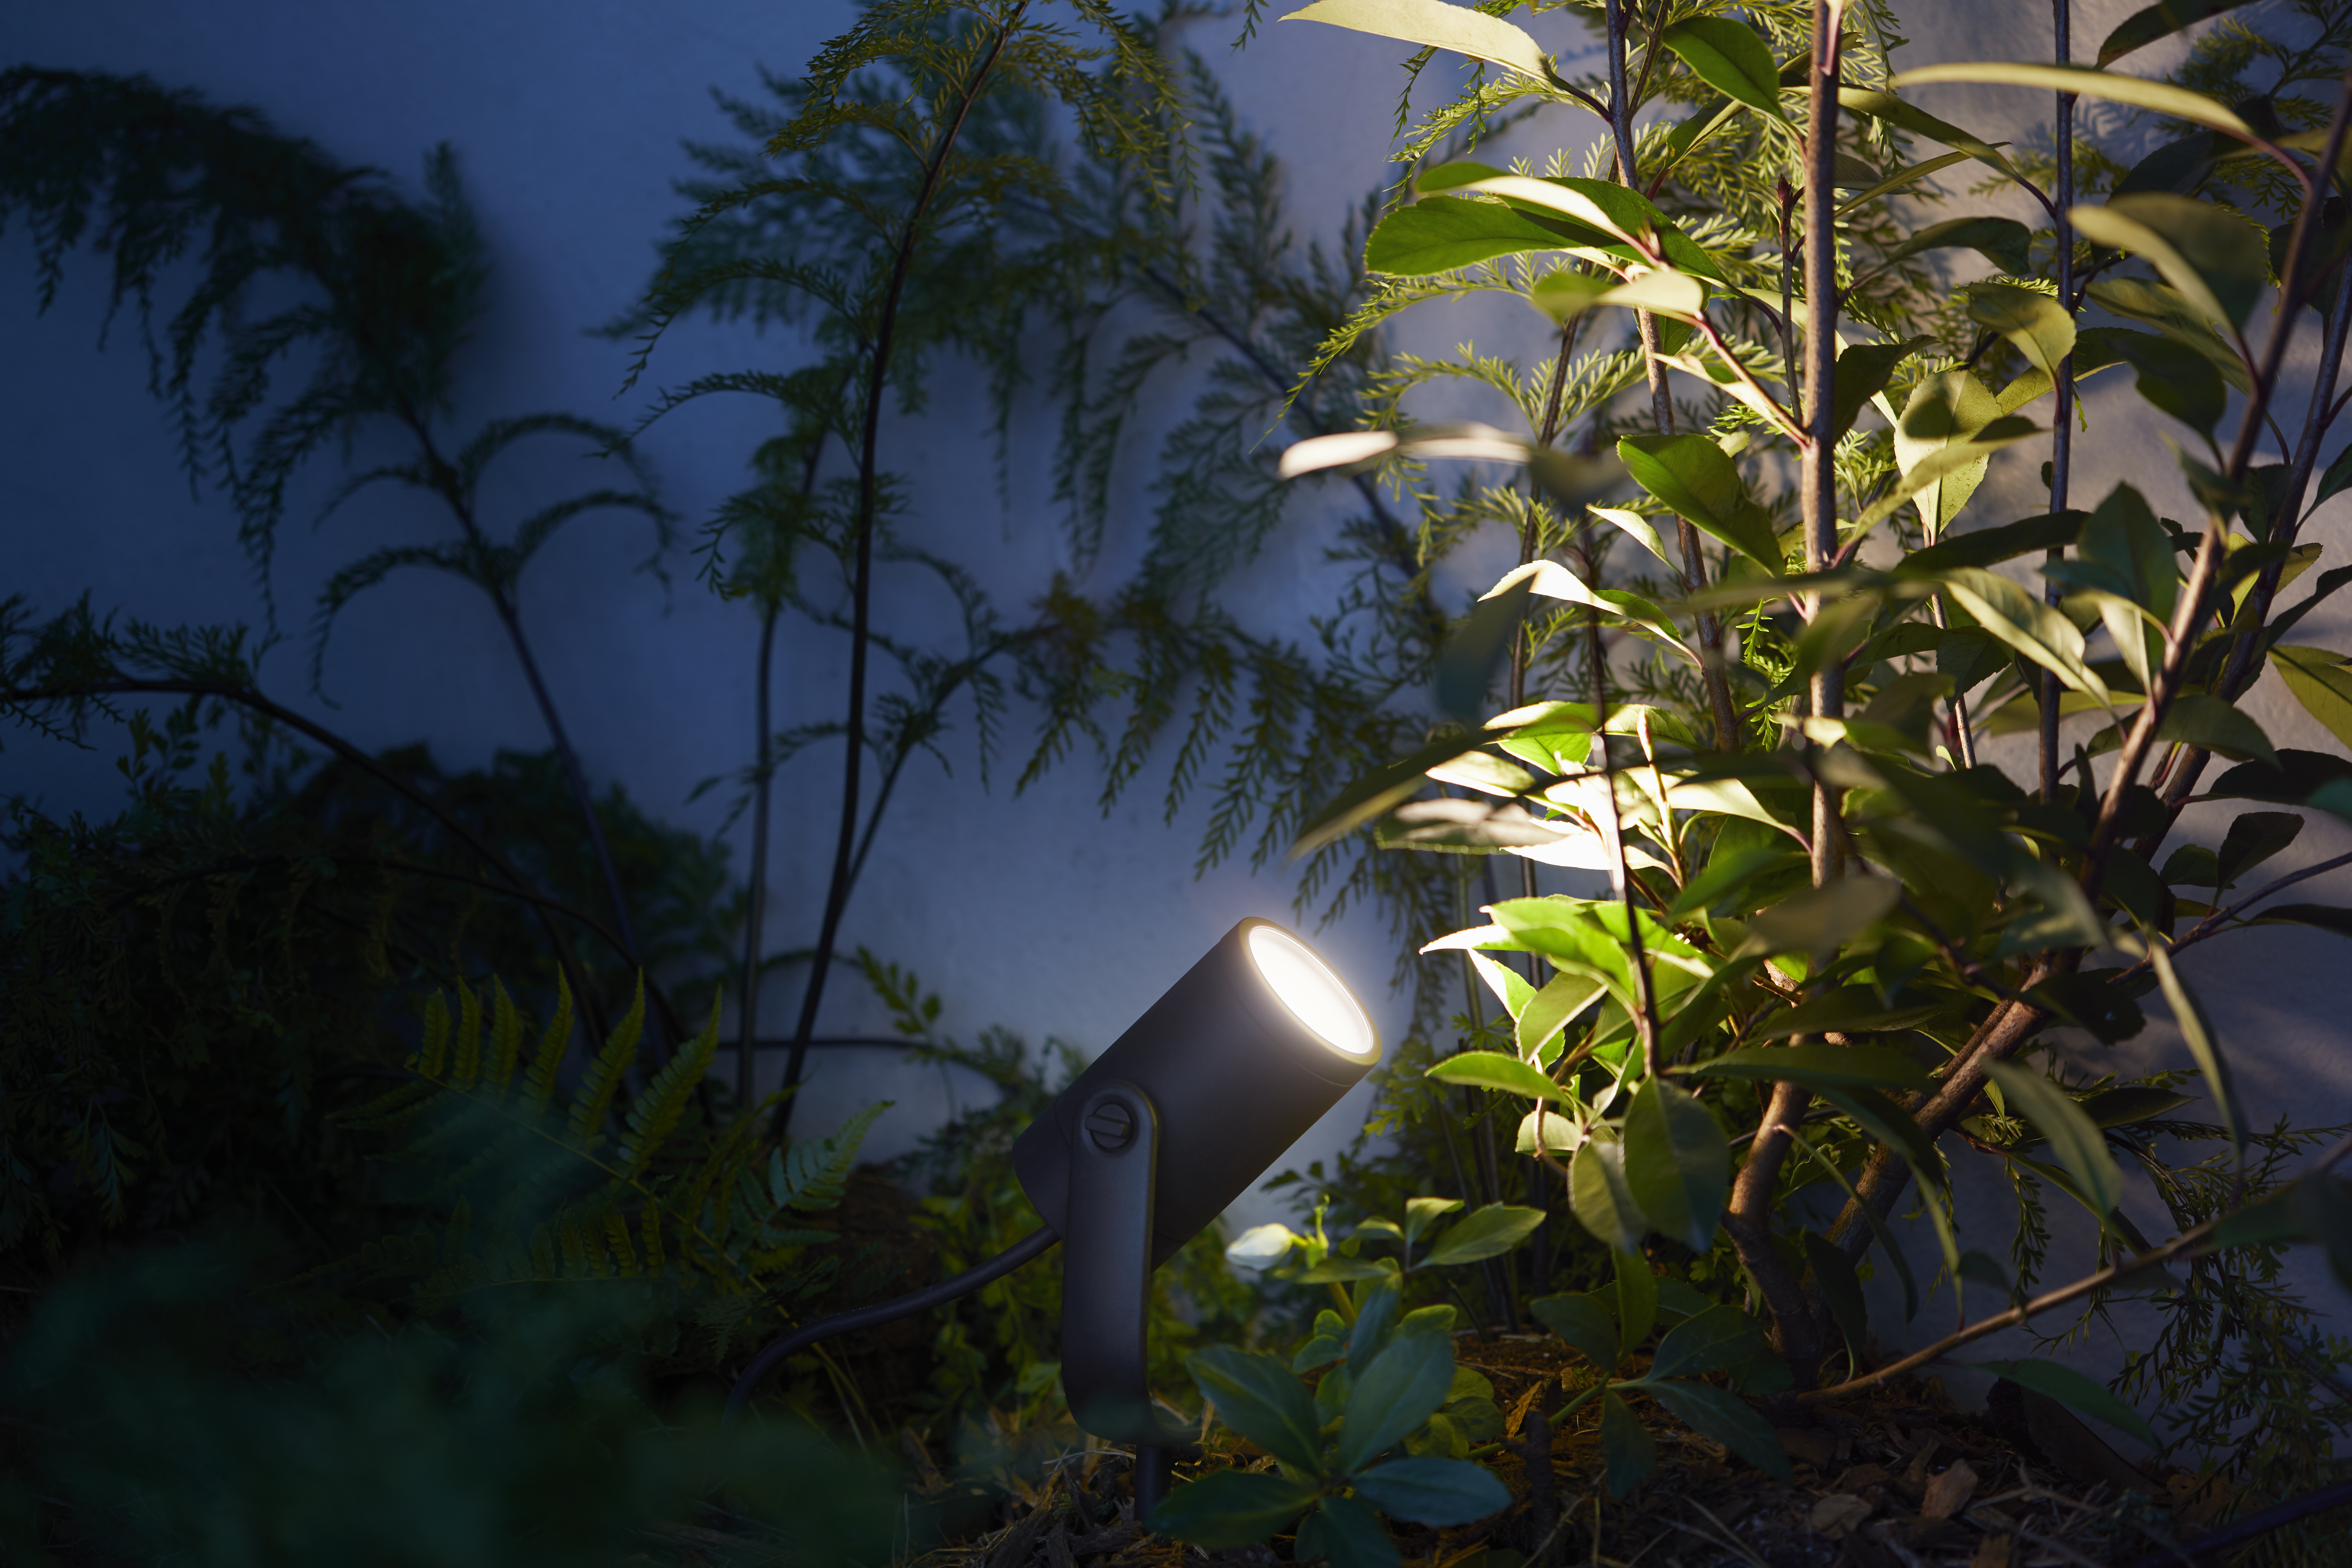 Philips Hue Now Lights The Great Outdoors Verge Outdoor Landscape Lighting On Wiring Diagram For Led Garden Lily Spot Photo